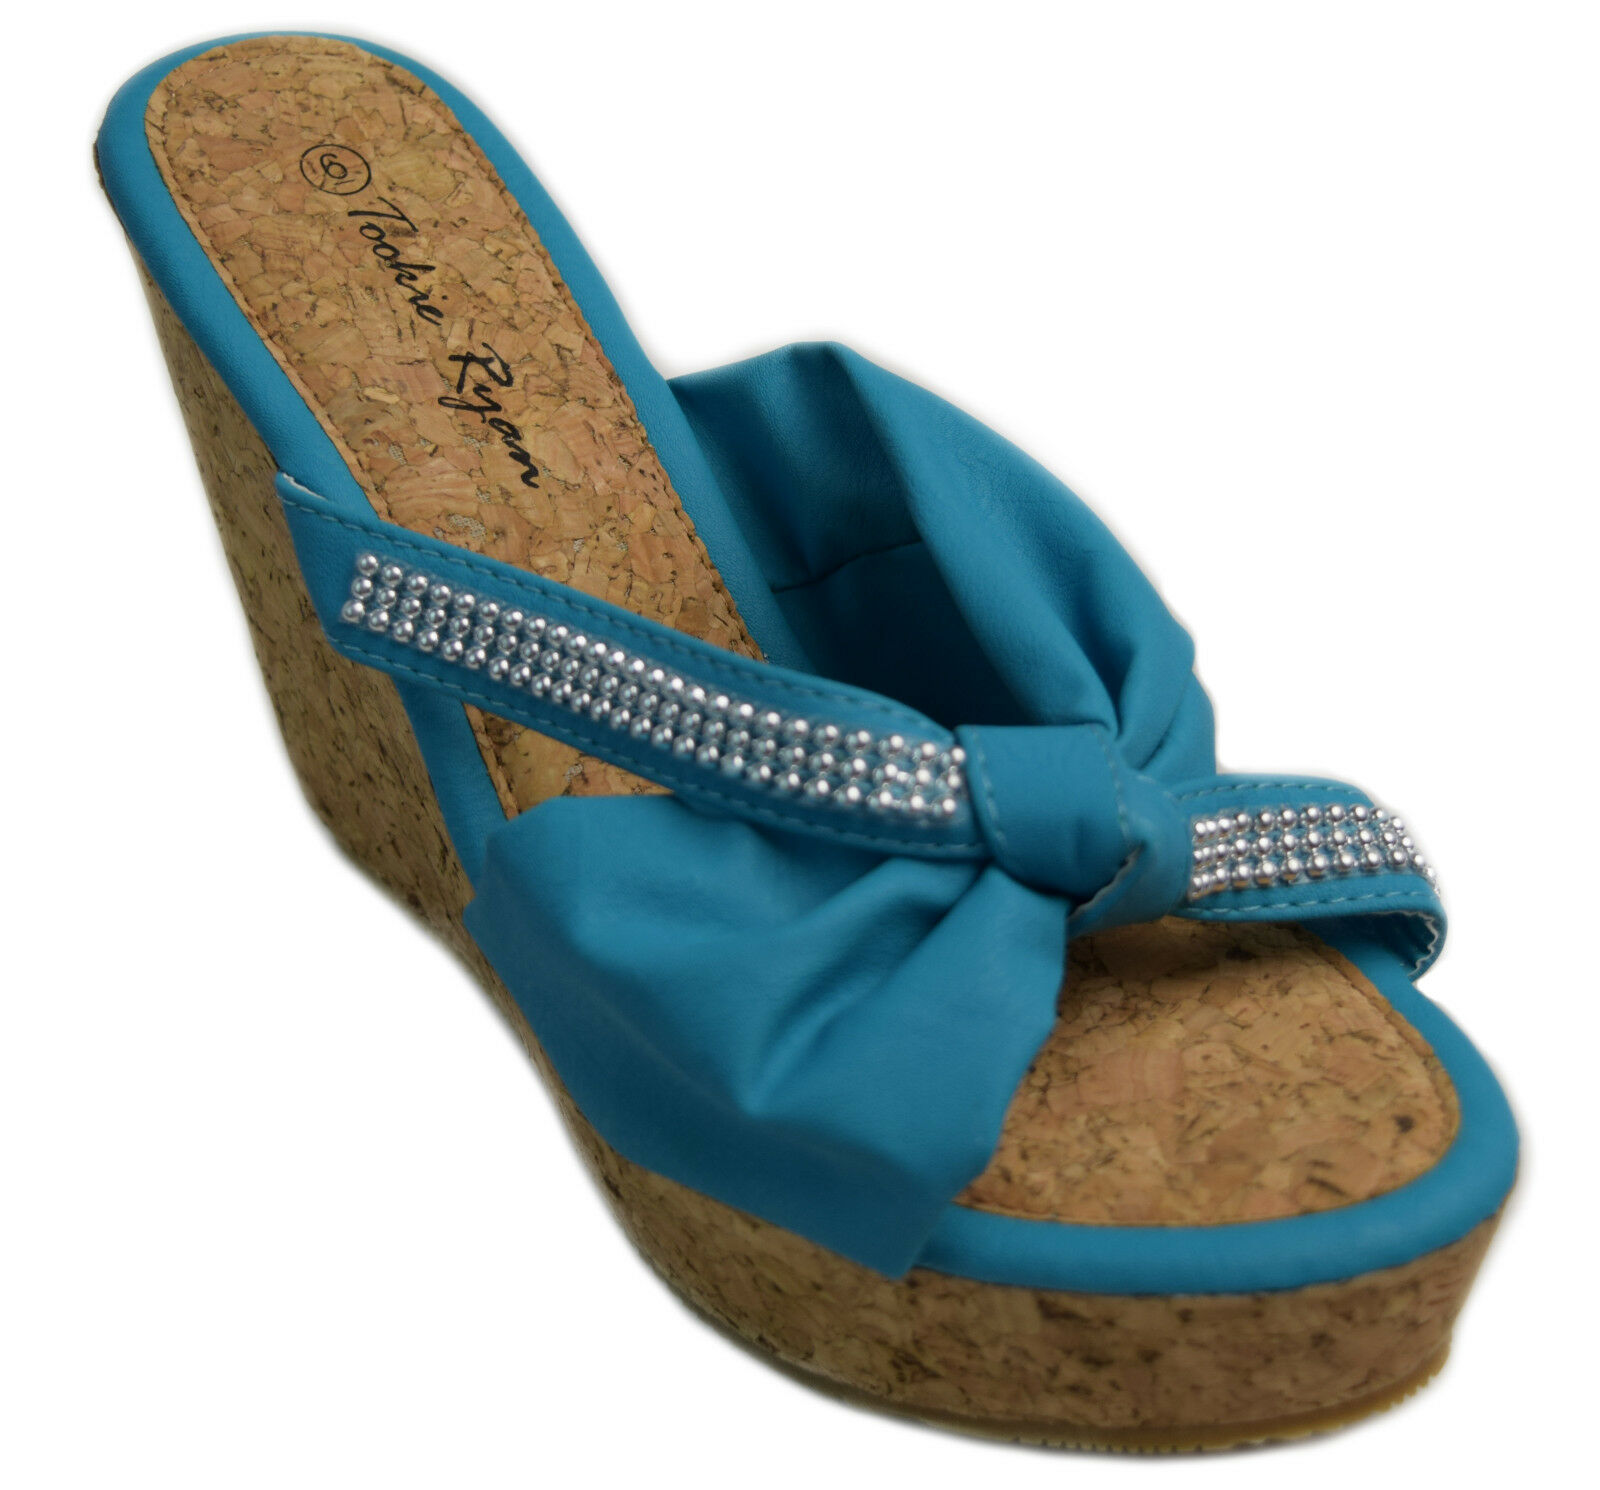 Womens Cork Wedge Sandals Turquoise Open Toe Slide Beaded shoes